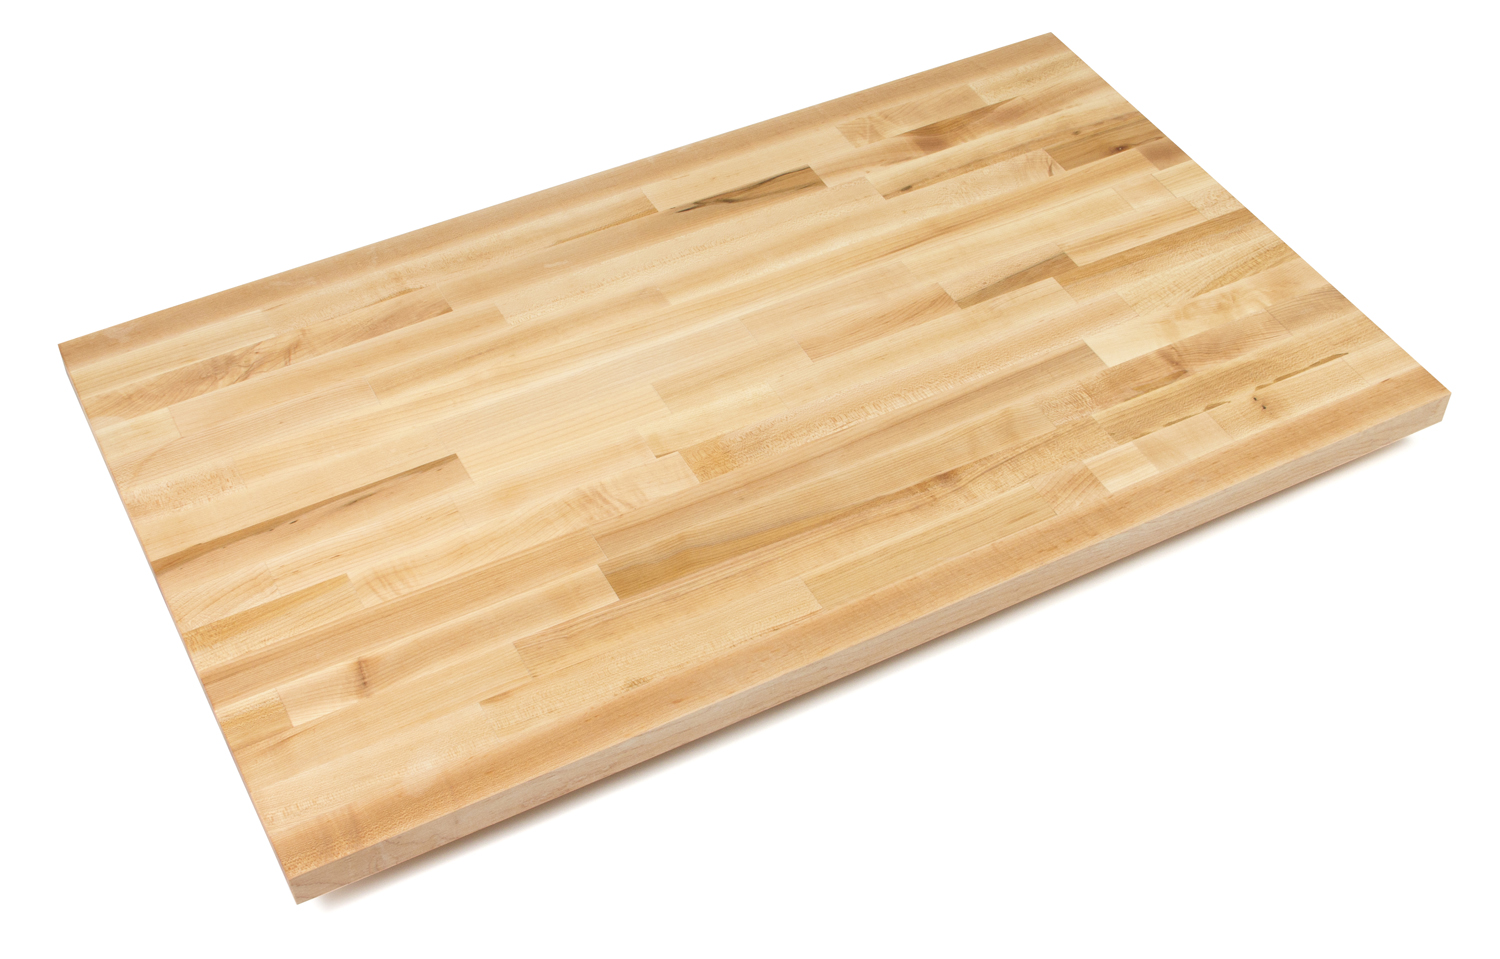 1.5 inch thick blended maple countertop 42 inches wide - John Boos